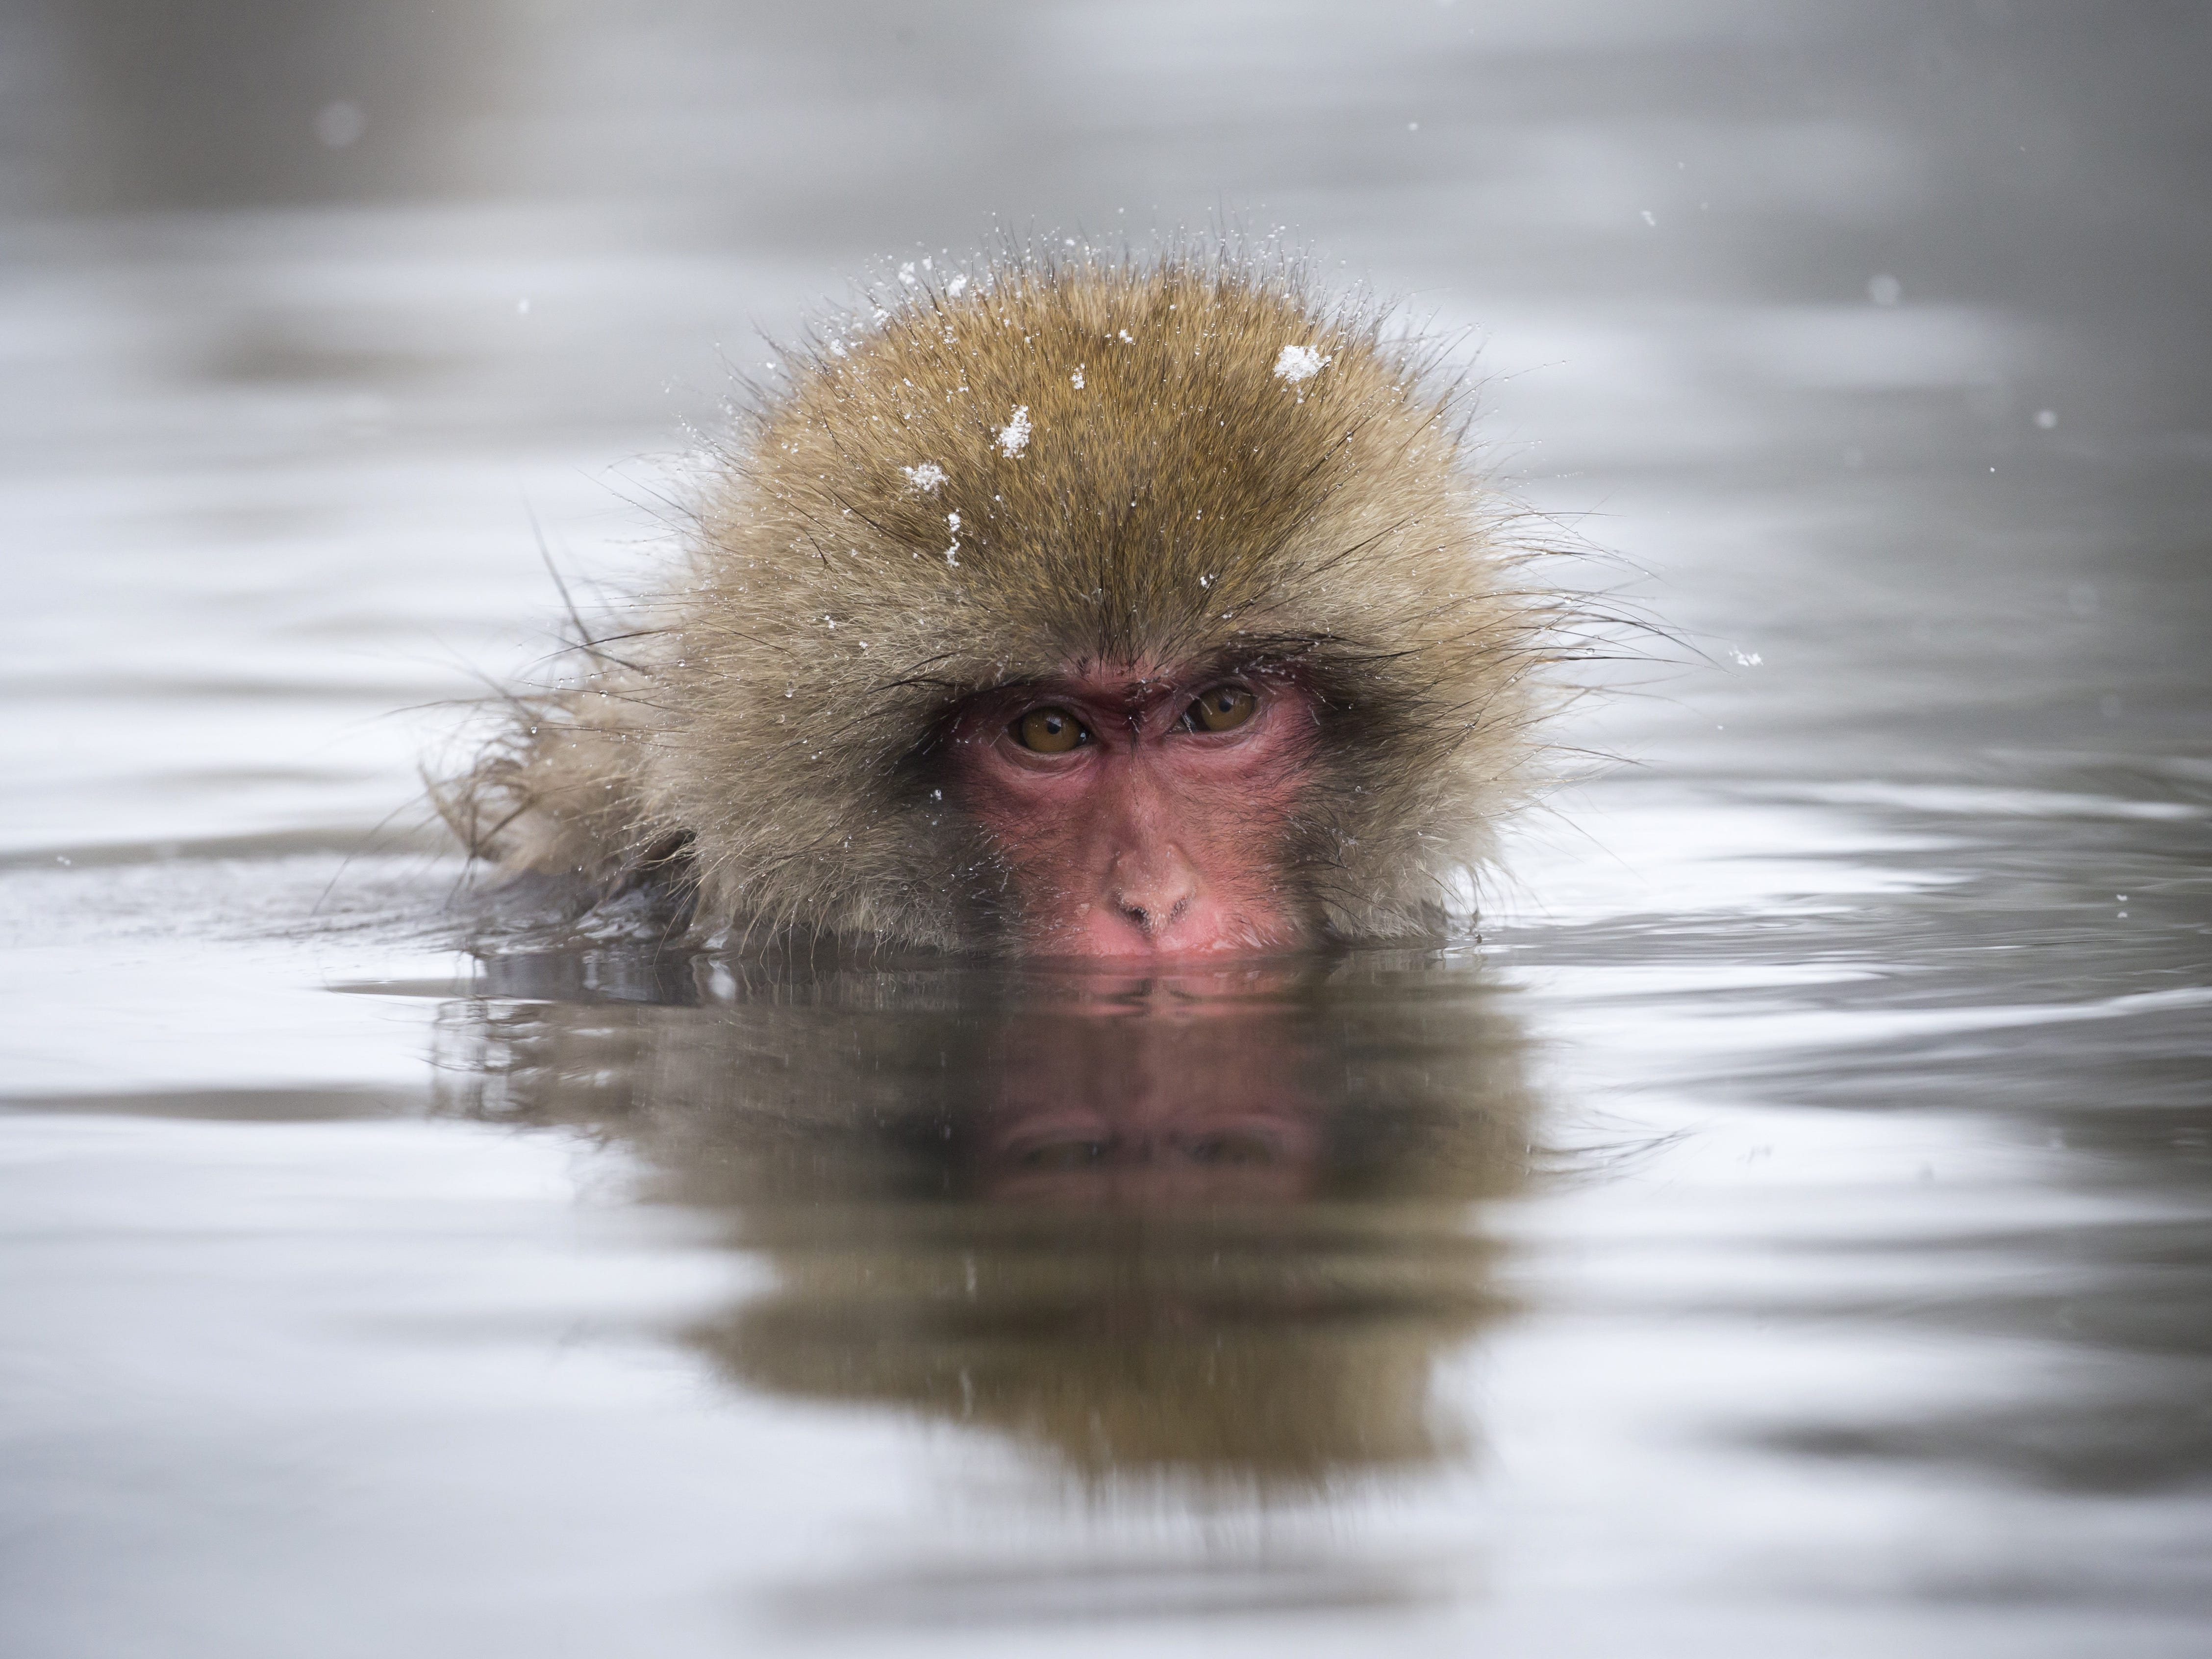 YAMANOUCHI, JAPAN - FEBRUARY 08: A Macaque monkey bathes in a hot spring at the Jigokudani Yaen-koen wild Macaque monkey park on February 8, 2019 in Yamanouchi, Japan. The wild Japanese macaques are known as snow monkeys, according to the park's official website. (Photo by Tomohiro Ohsumi/Getty Images) ORG XMIT: 775292339 ORIG FILE ID: 1128216150